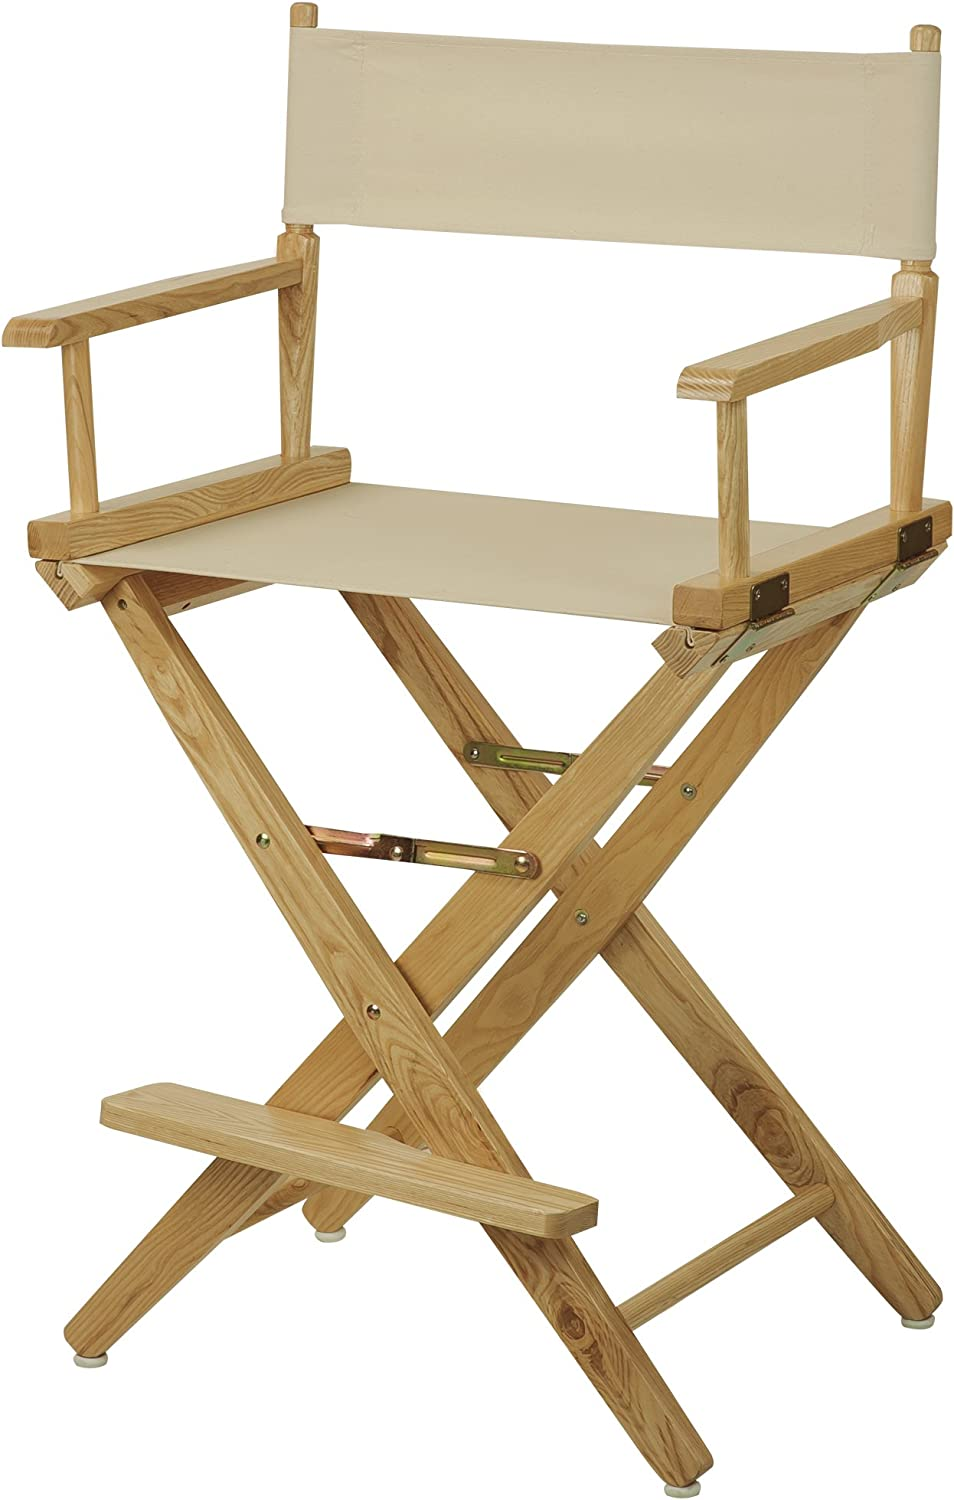 American Trails Extra-Wide Premium24 Director's Chair Natural Frame with Natural Canvas, Counter Height